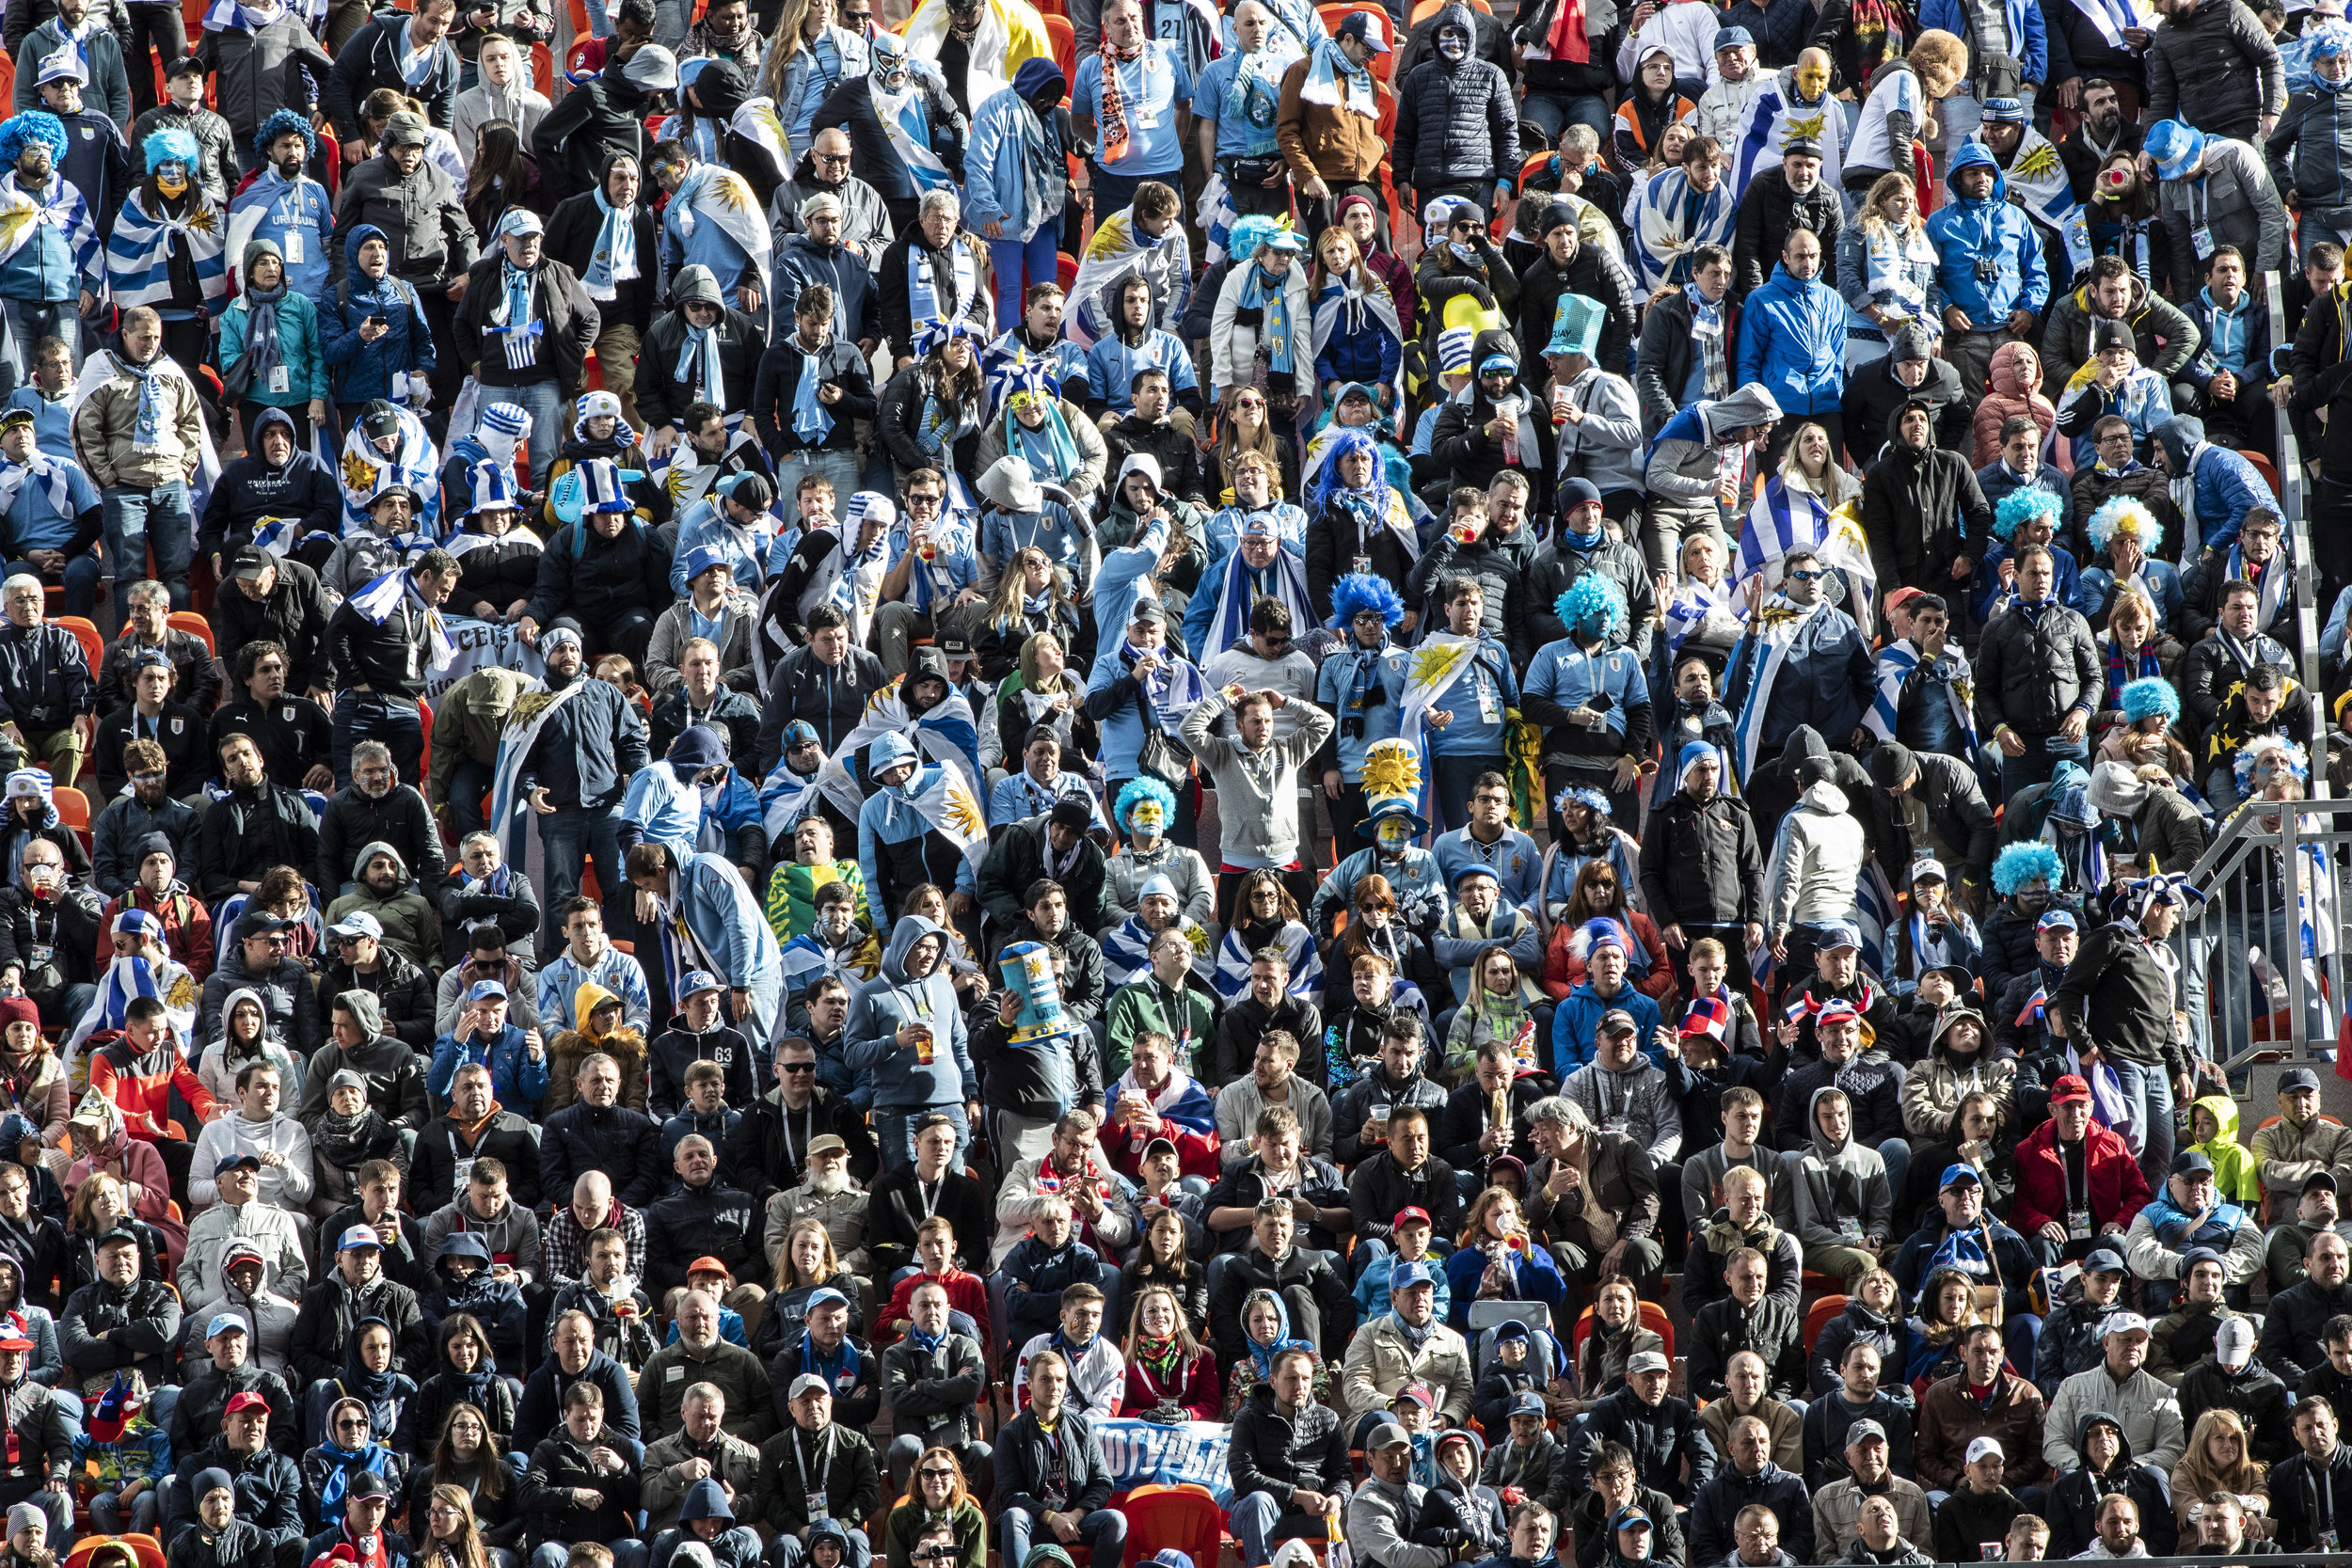 Uruguayan fans react as their team misses another attempt on Egypt team's goal